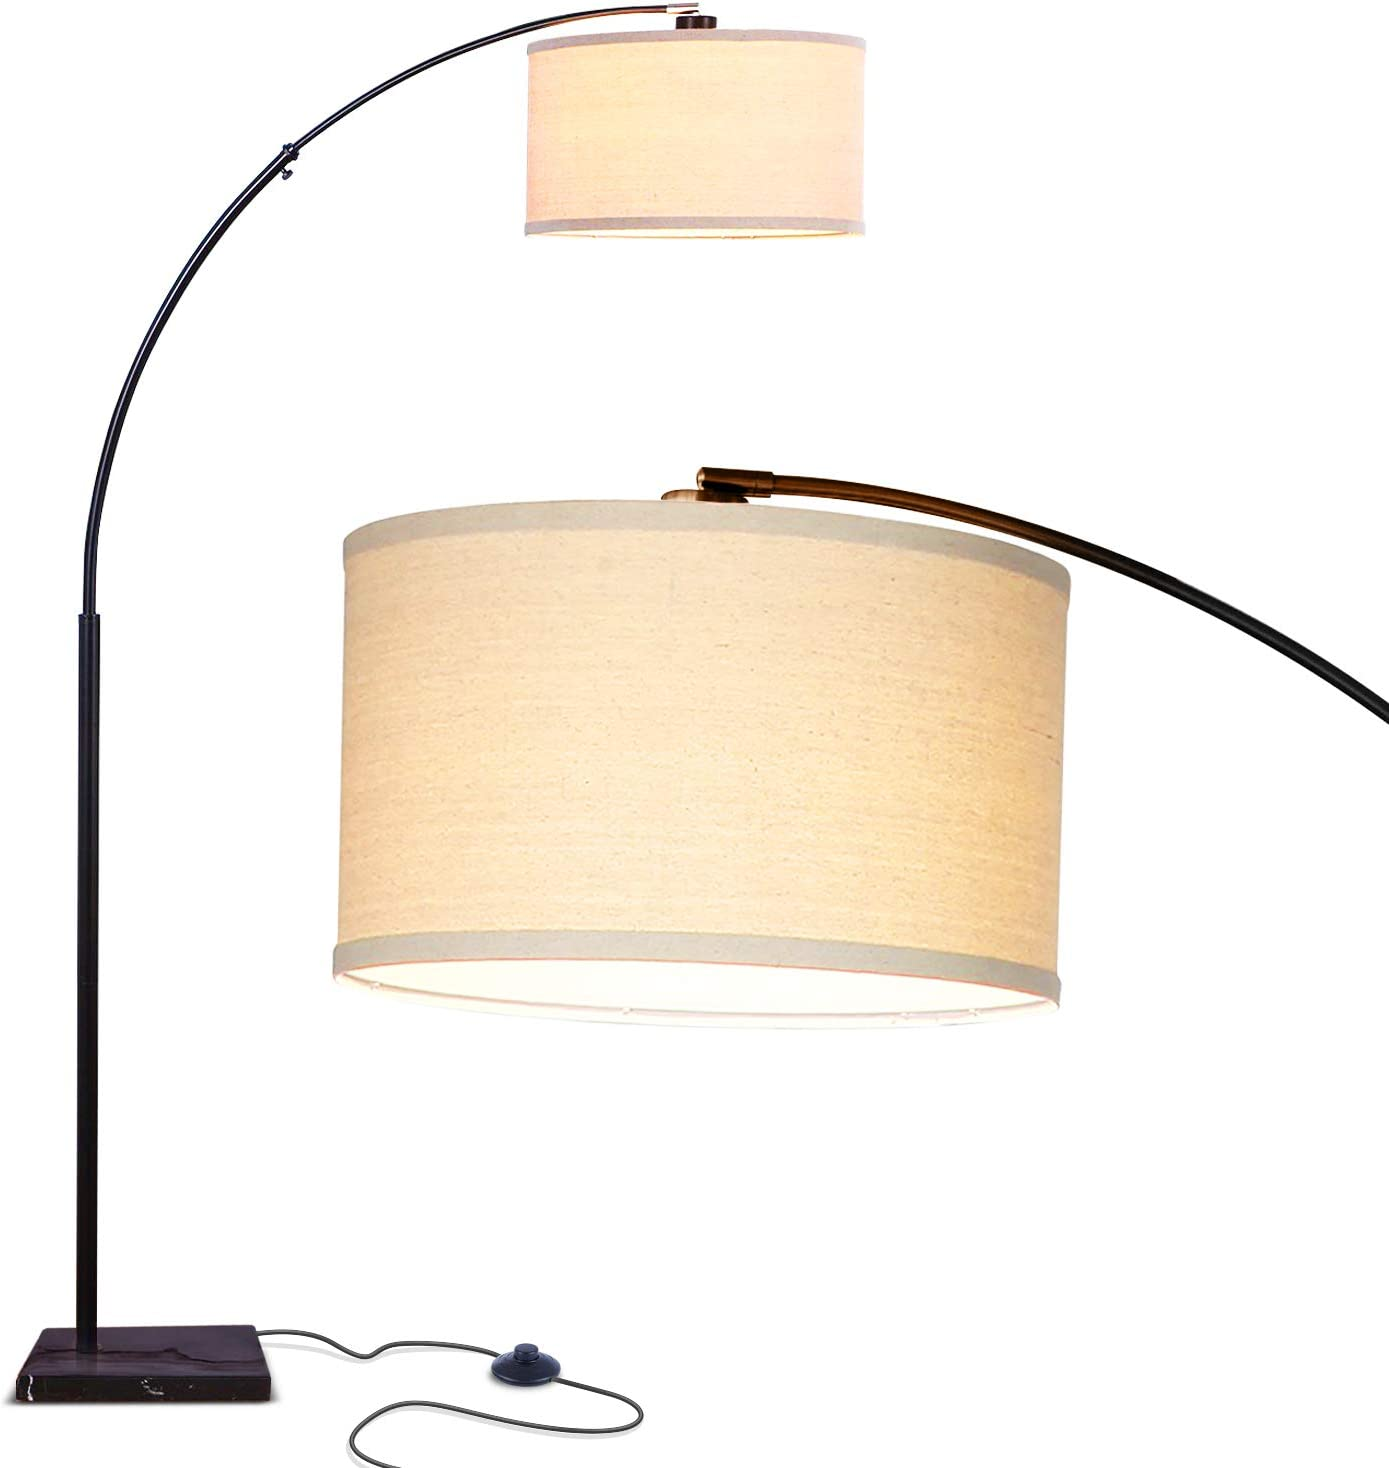 Shop Contemporary Arc Floor Lamp w. Marble Base from Amazon on Openhaus